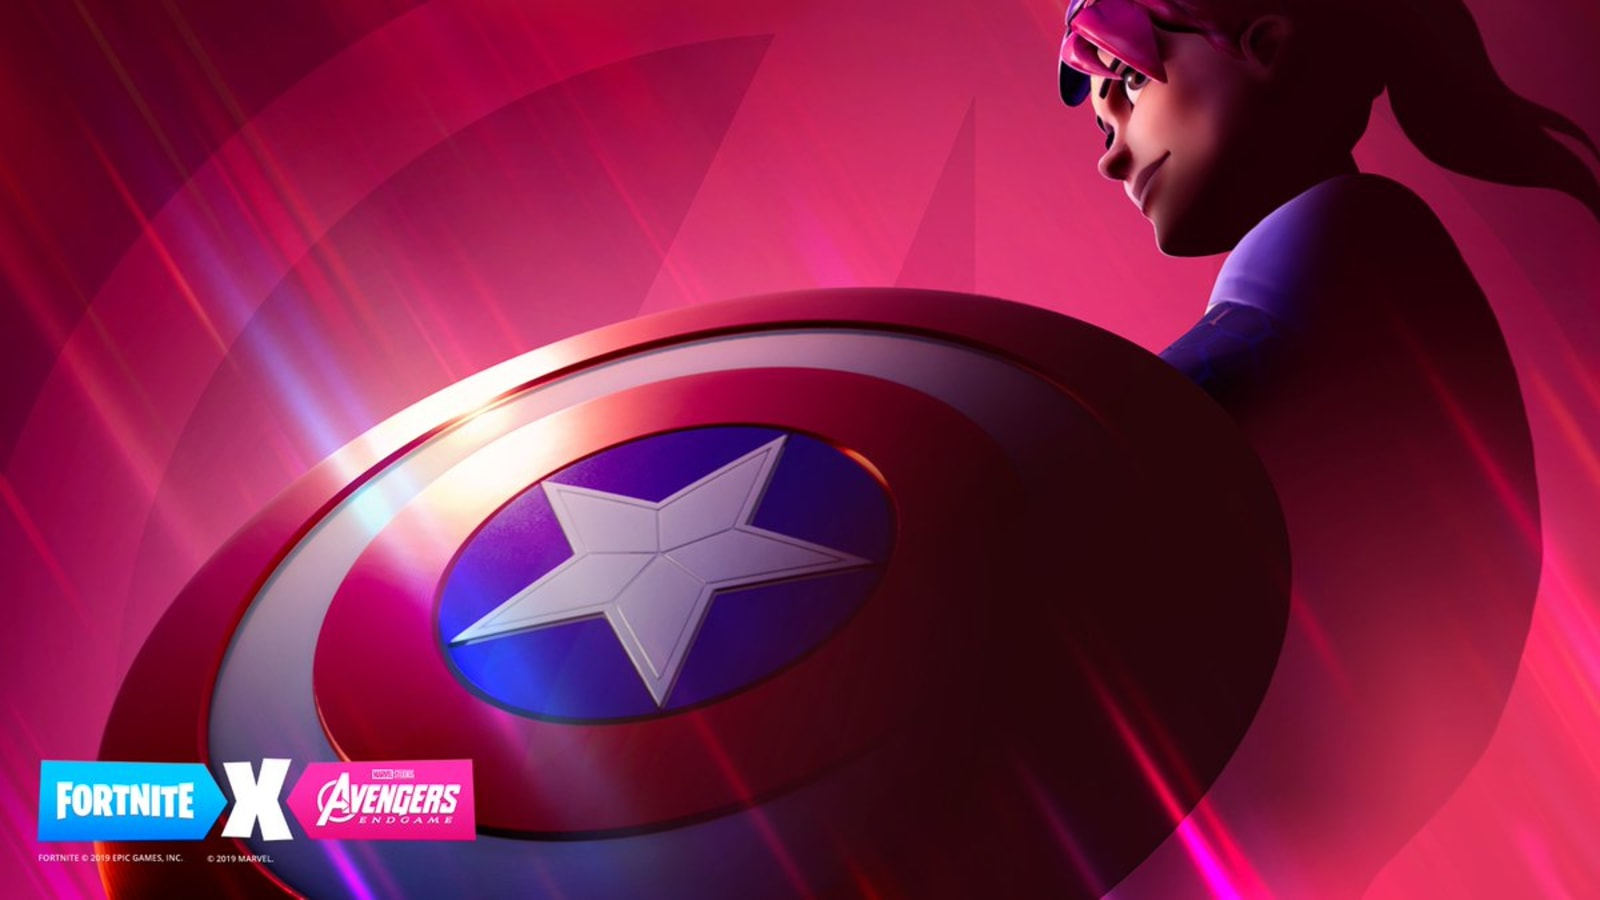 'Avengers: Endgame' event is coming to 'Fortnite' this week